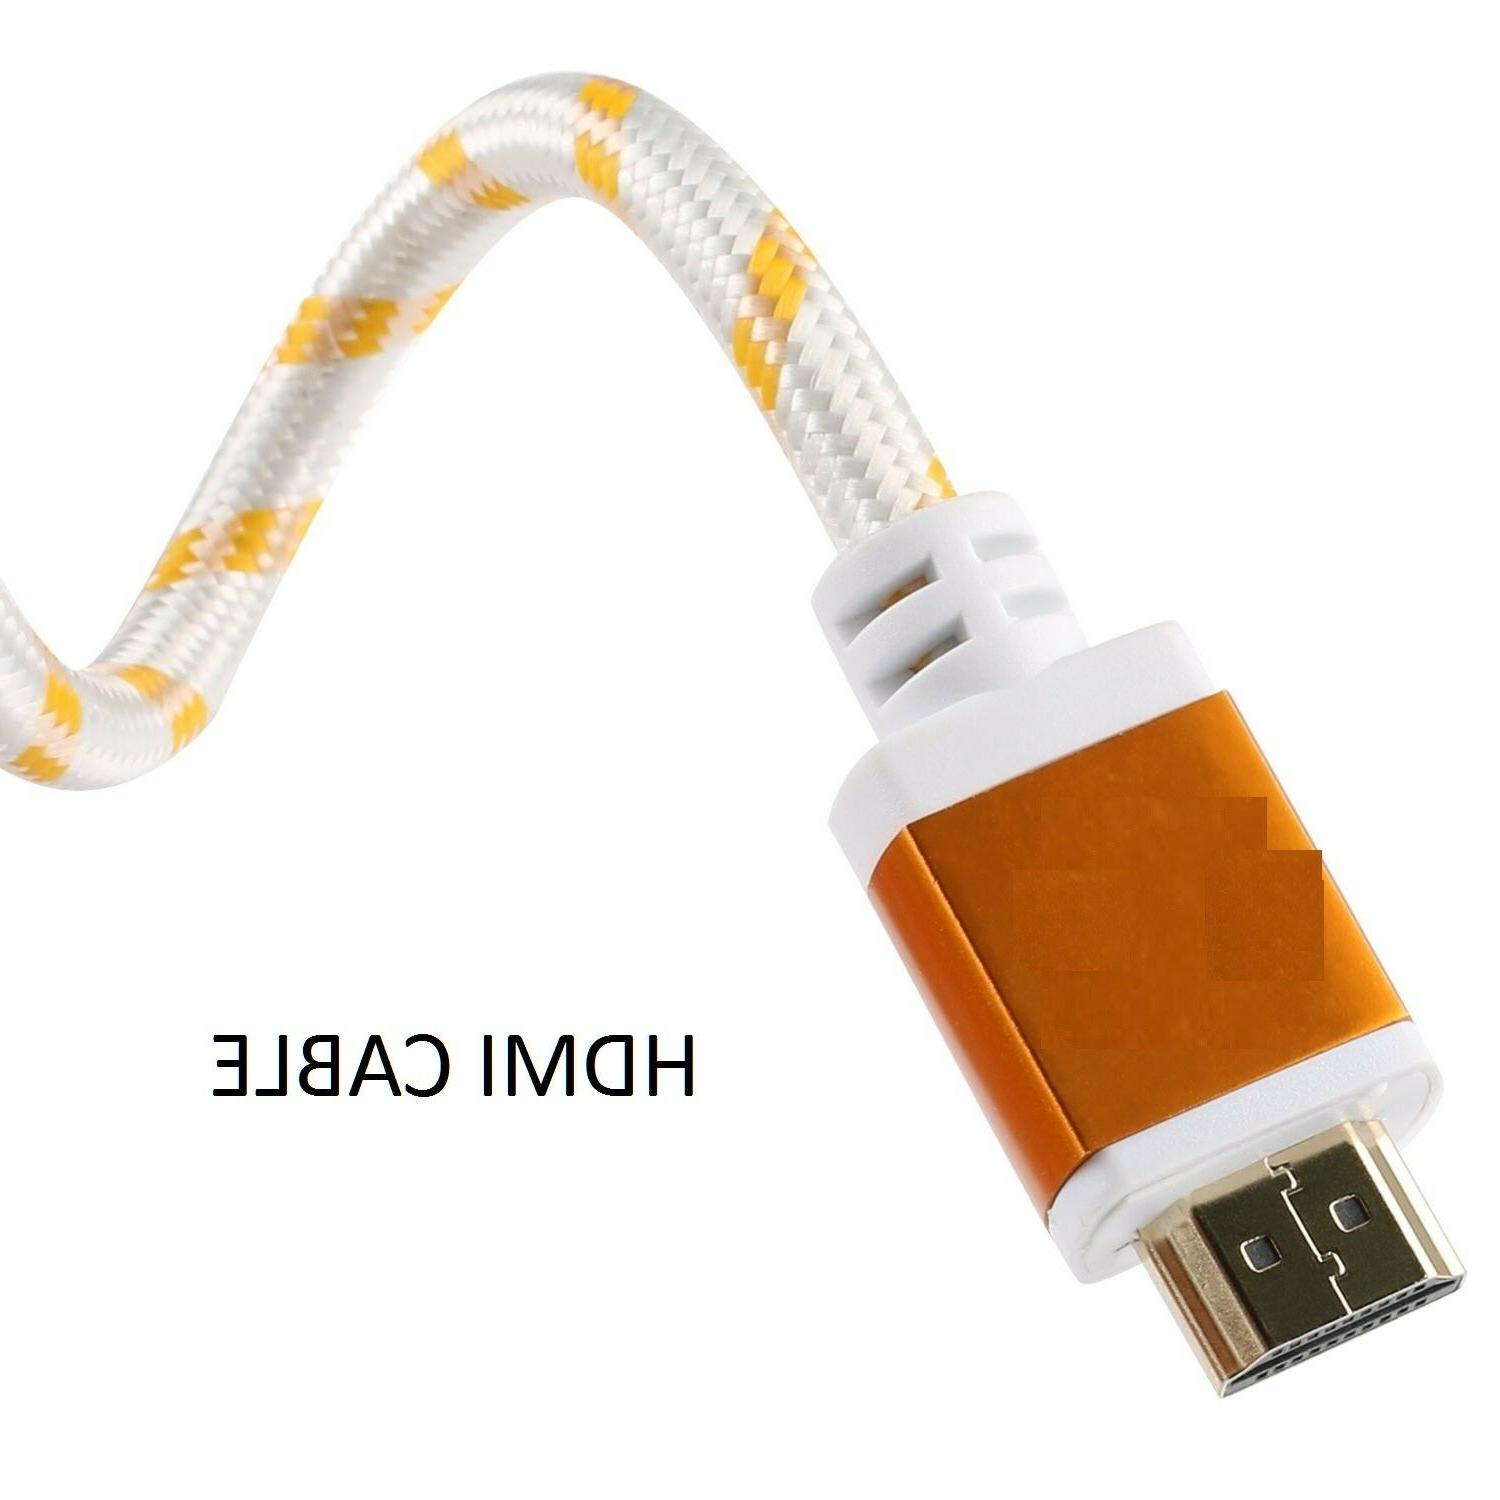 PREMIUM CABLE For HDTV LCD TV 1080P White US